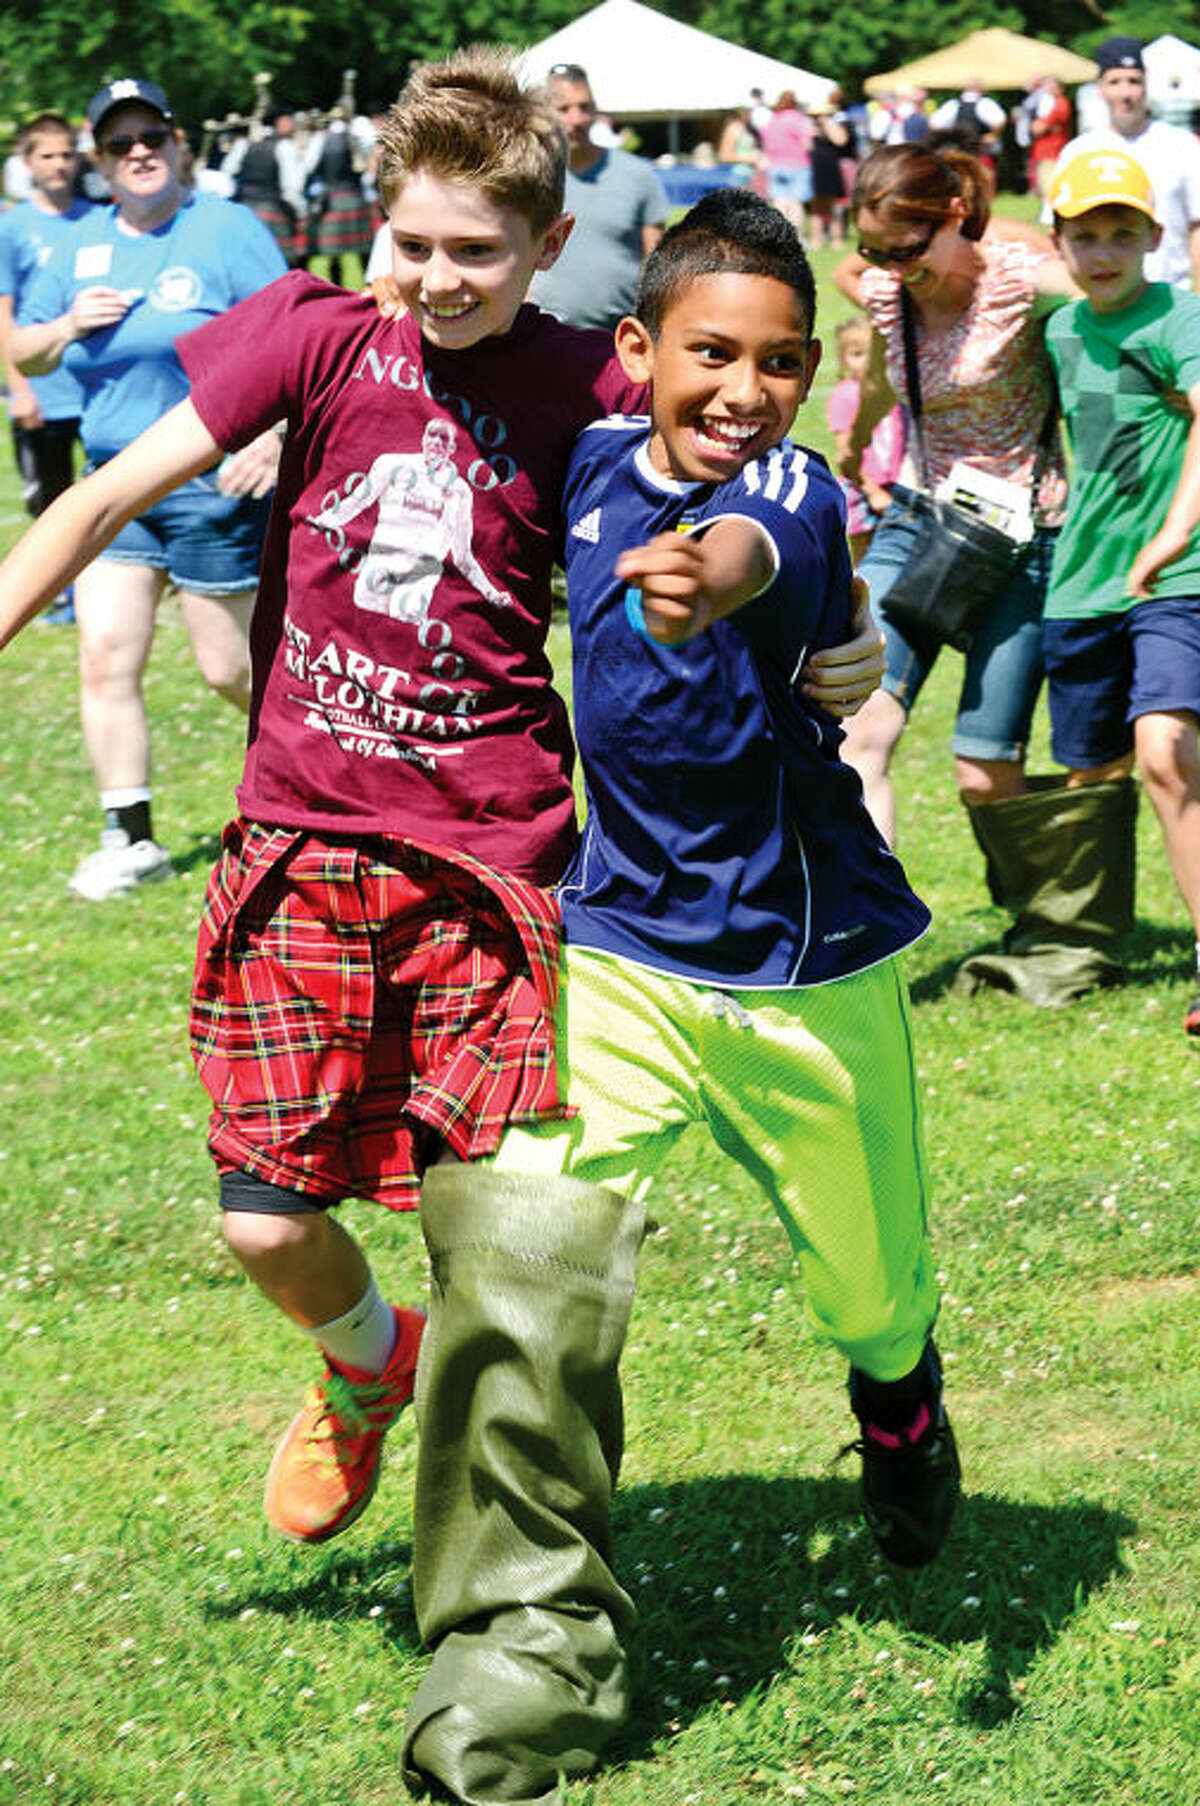 Hour photo / Erik Trautmann Bobby Beaton, 12, and Brennyn Ordoner, 9, come in second during the three-legged race at the 91st Annual Round Hill Highland Games at Cranbury Park Saturday.